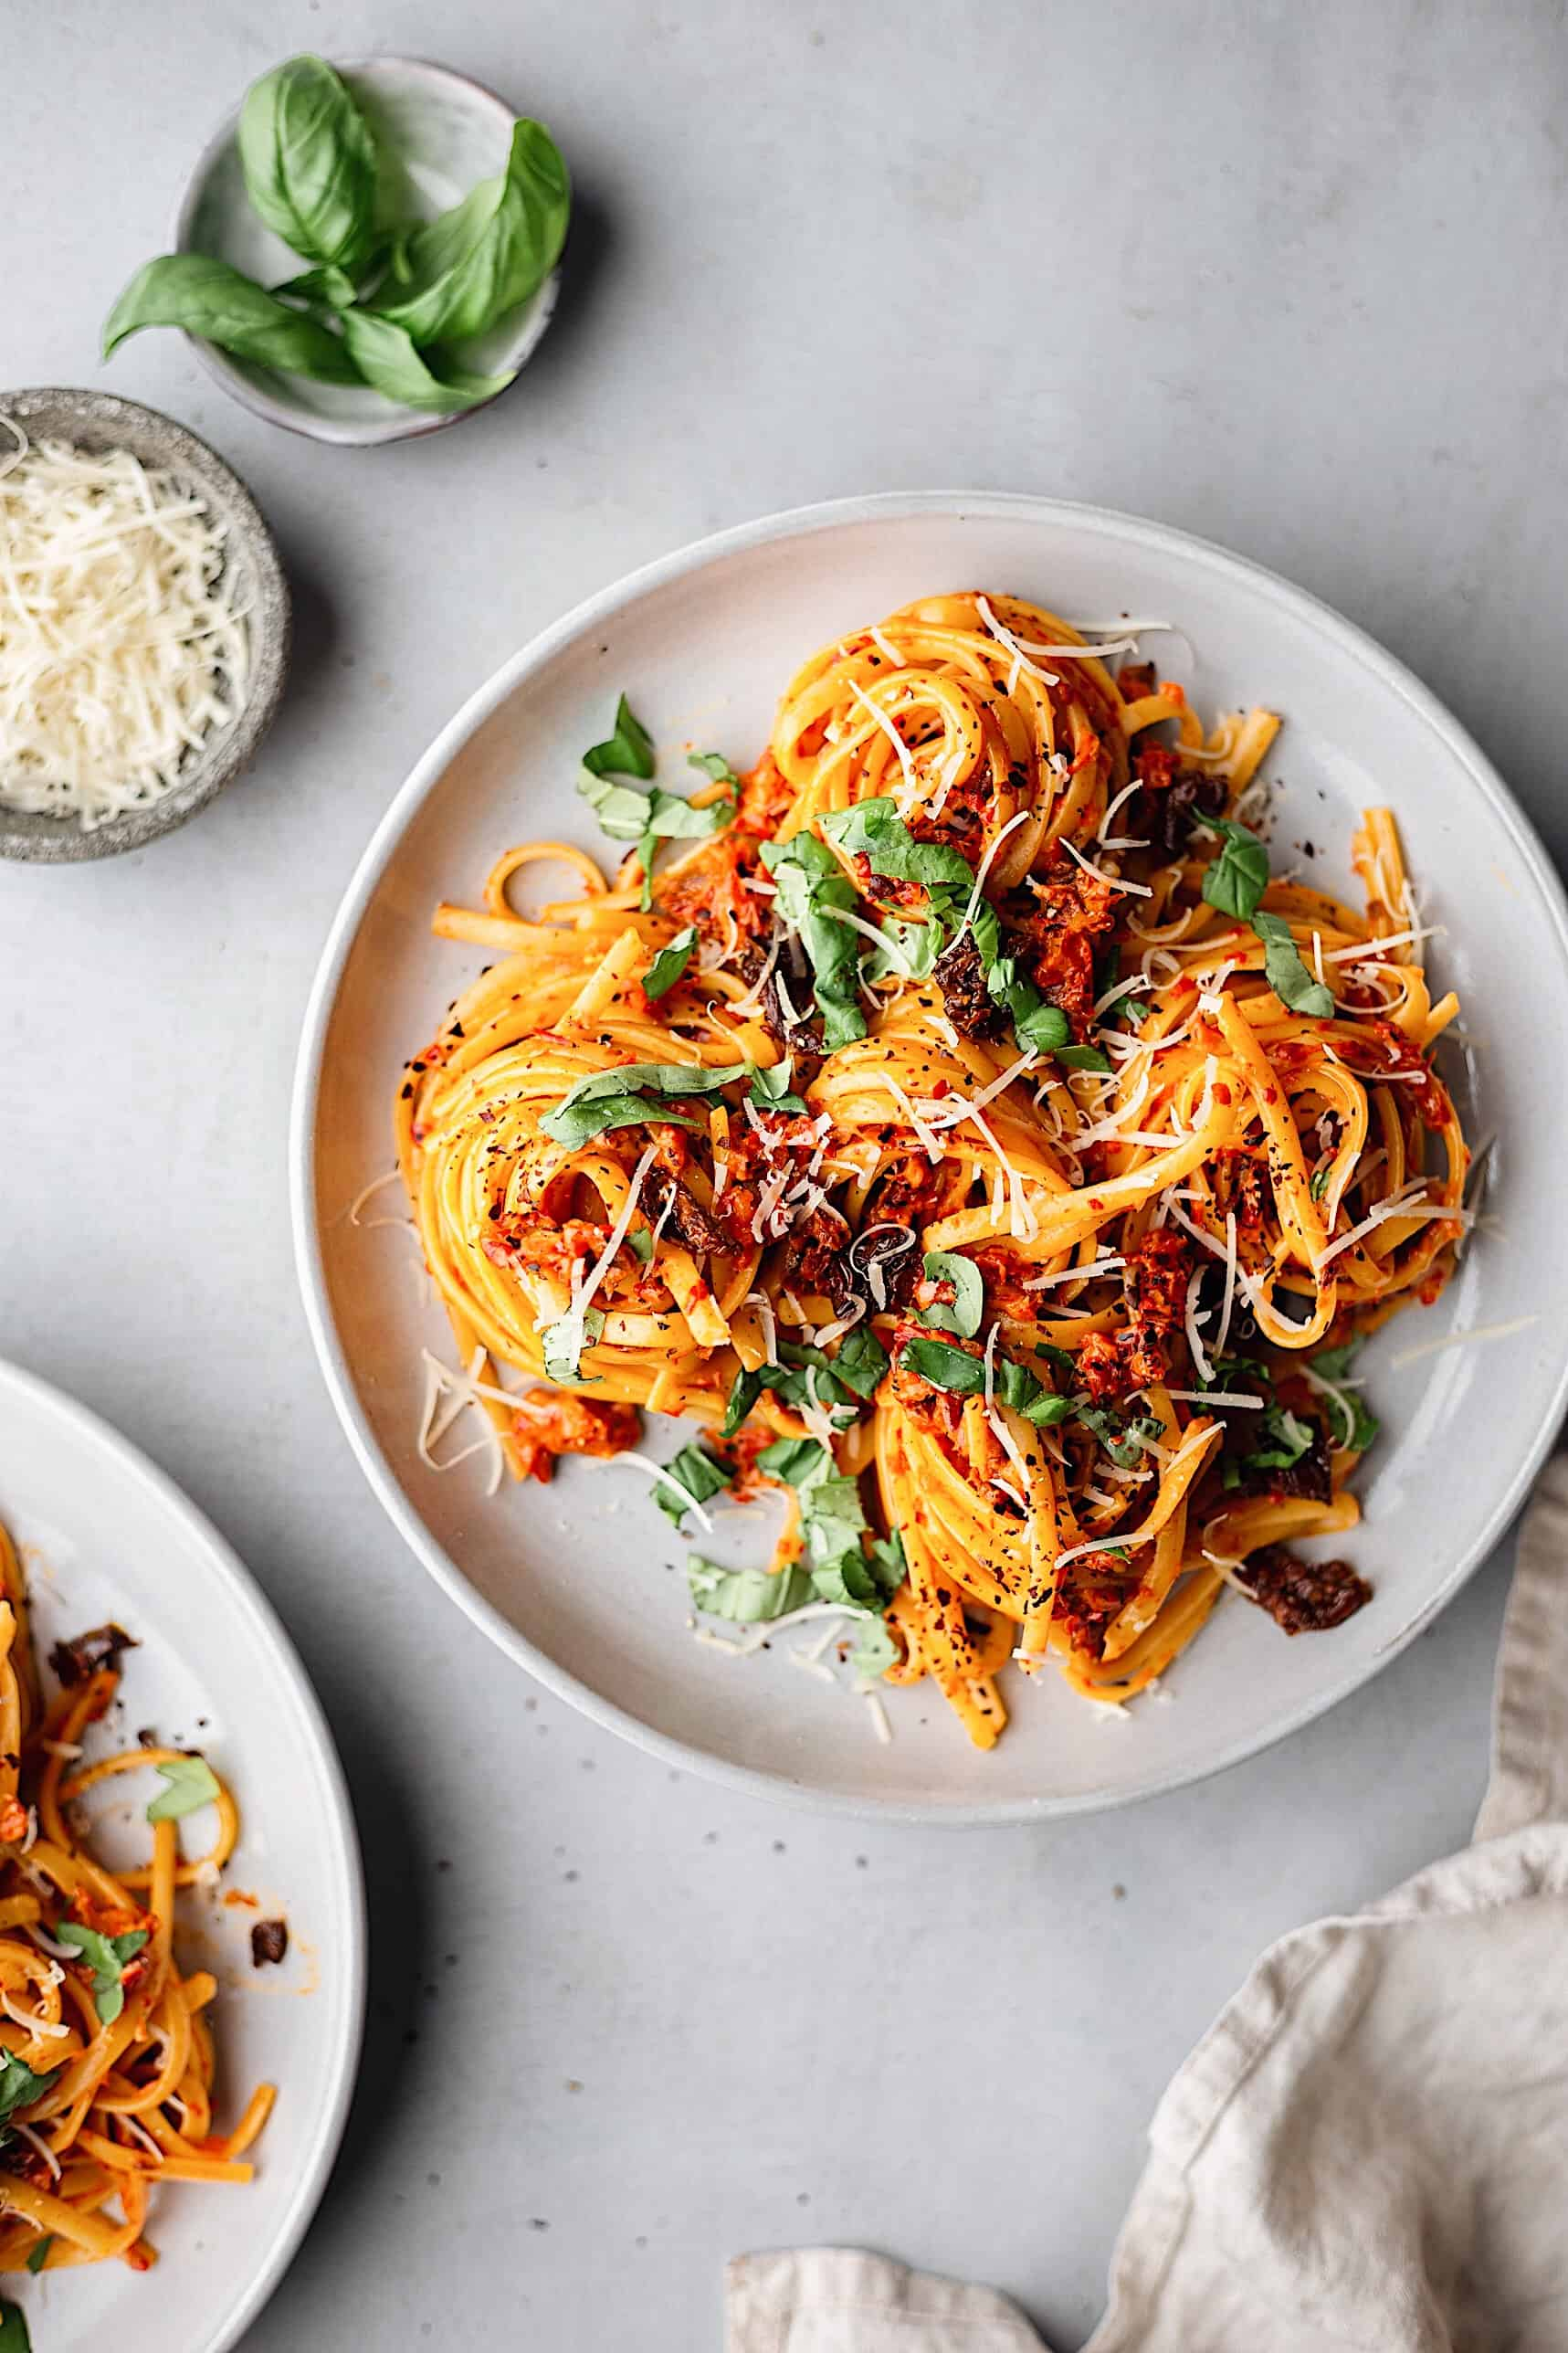 Vegan Roasted Red Pepper Pasta #vegan #recipe #pasta #redpepper